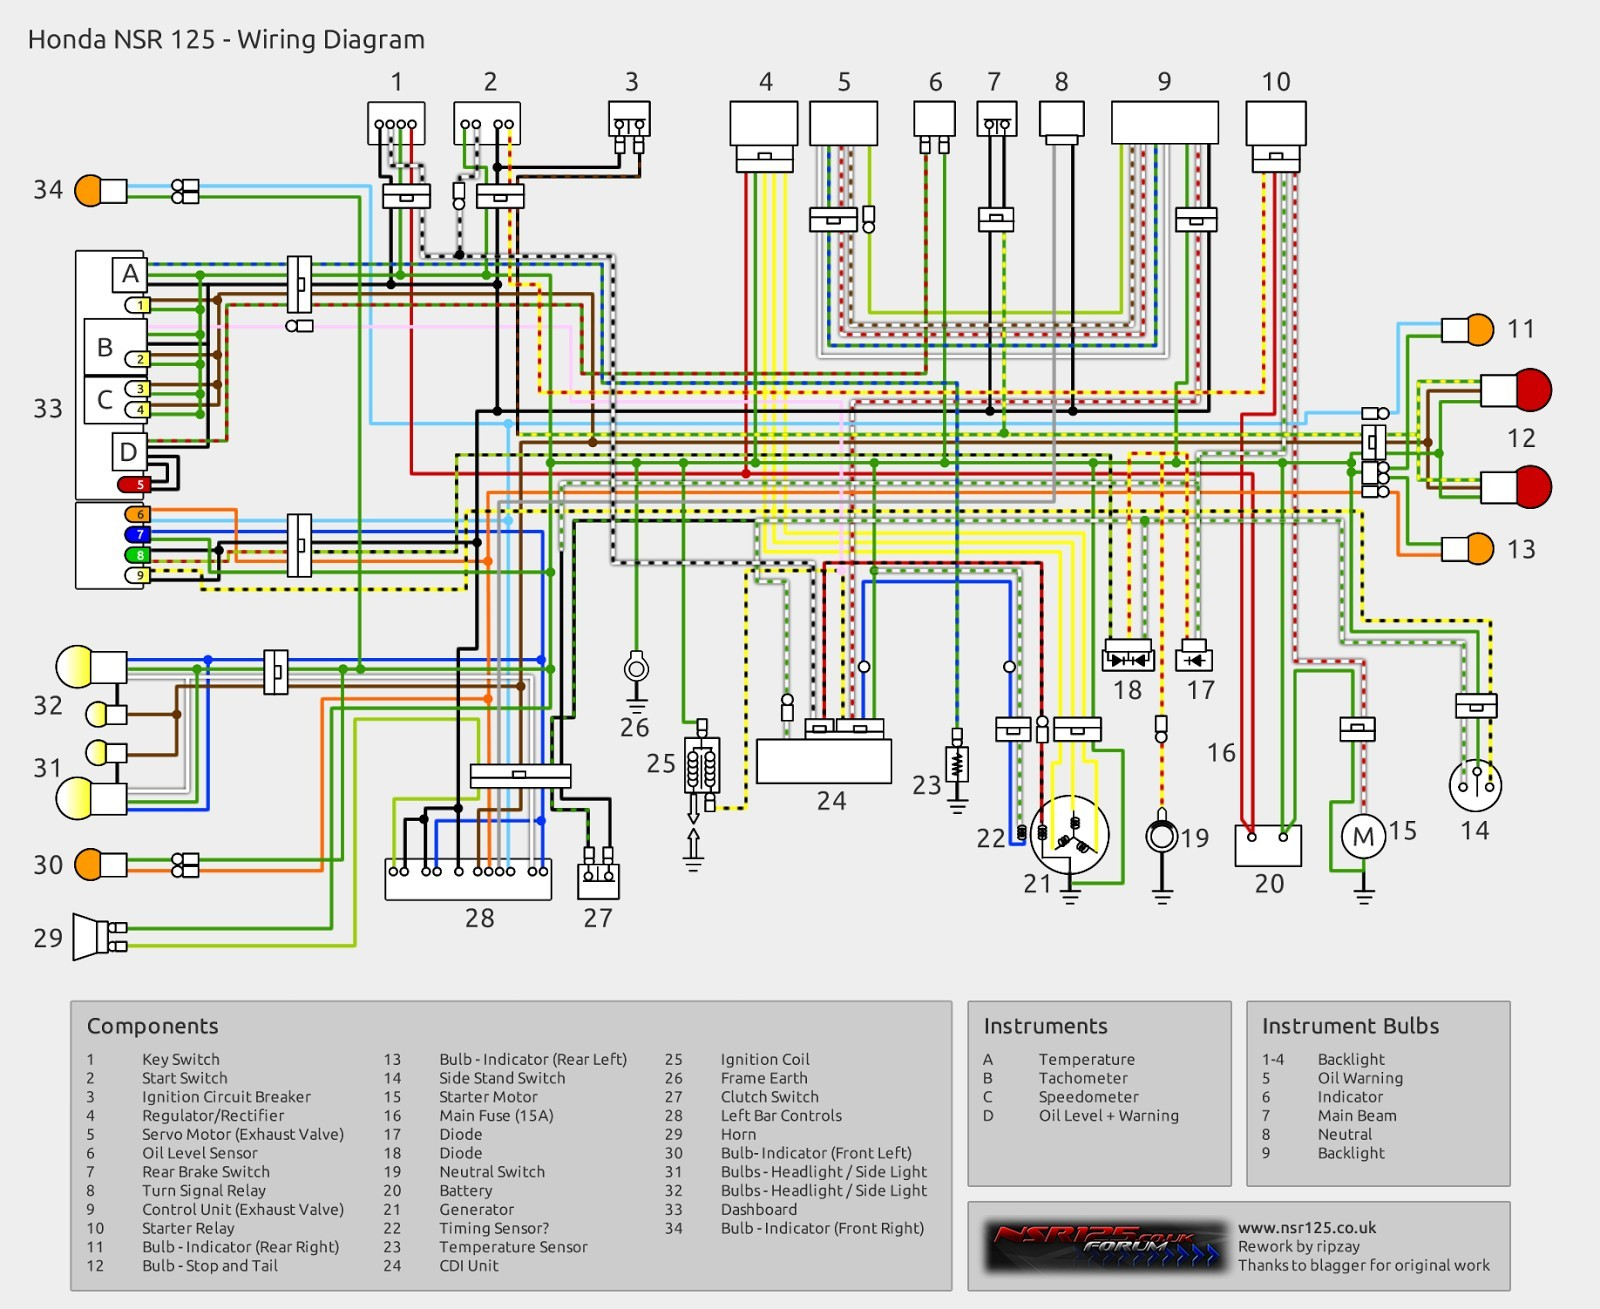 Wiring Diagram Honda Xl 125 : Honda xl wiring diagram my